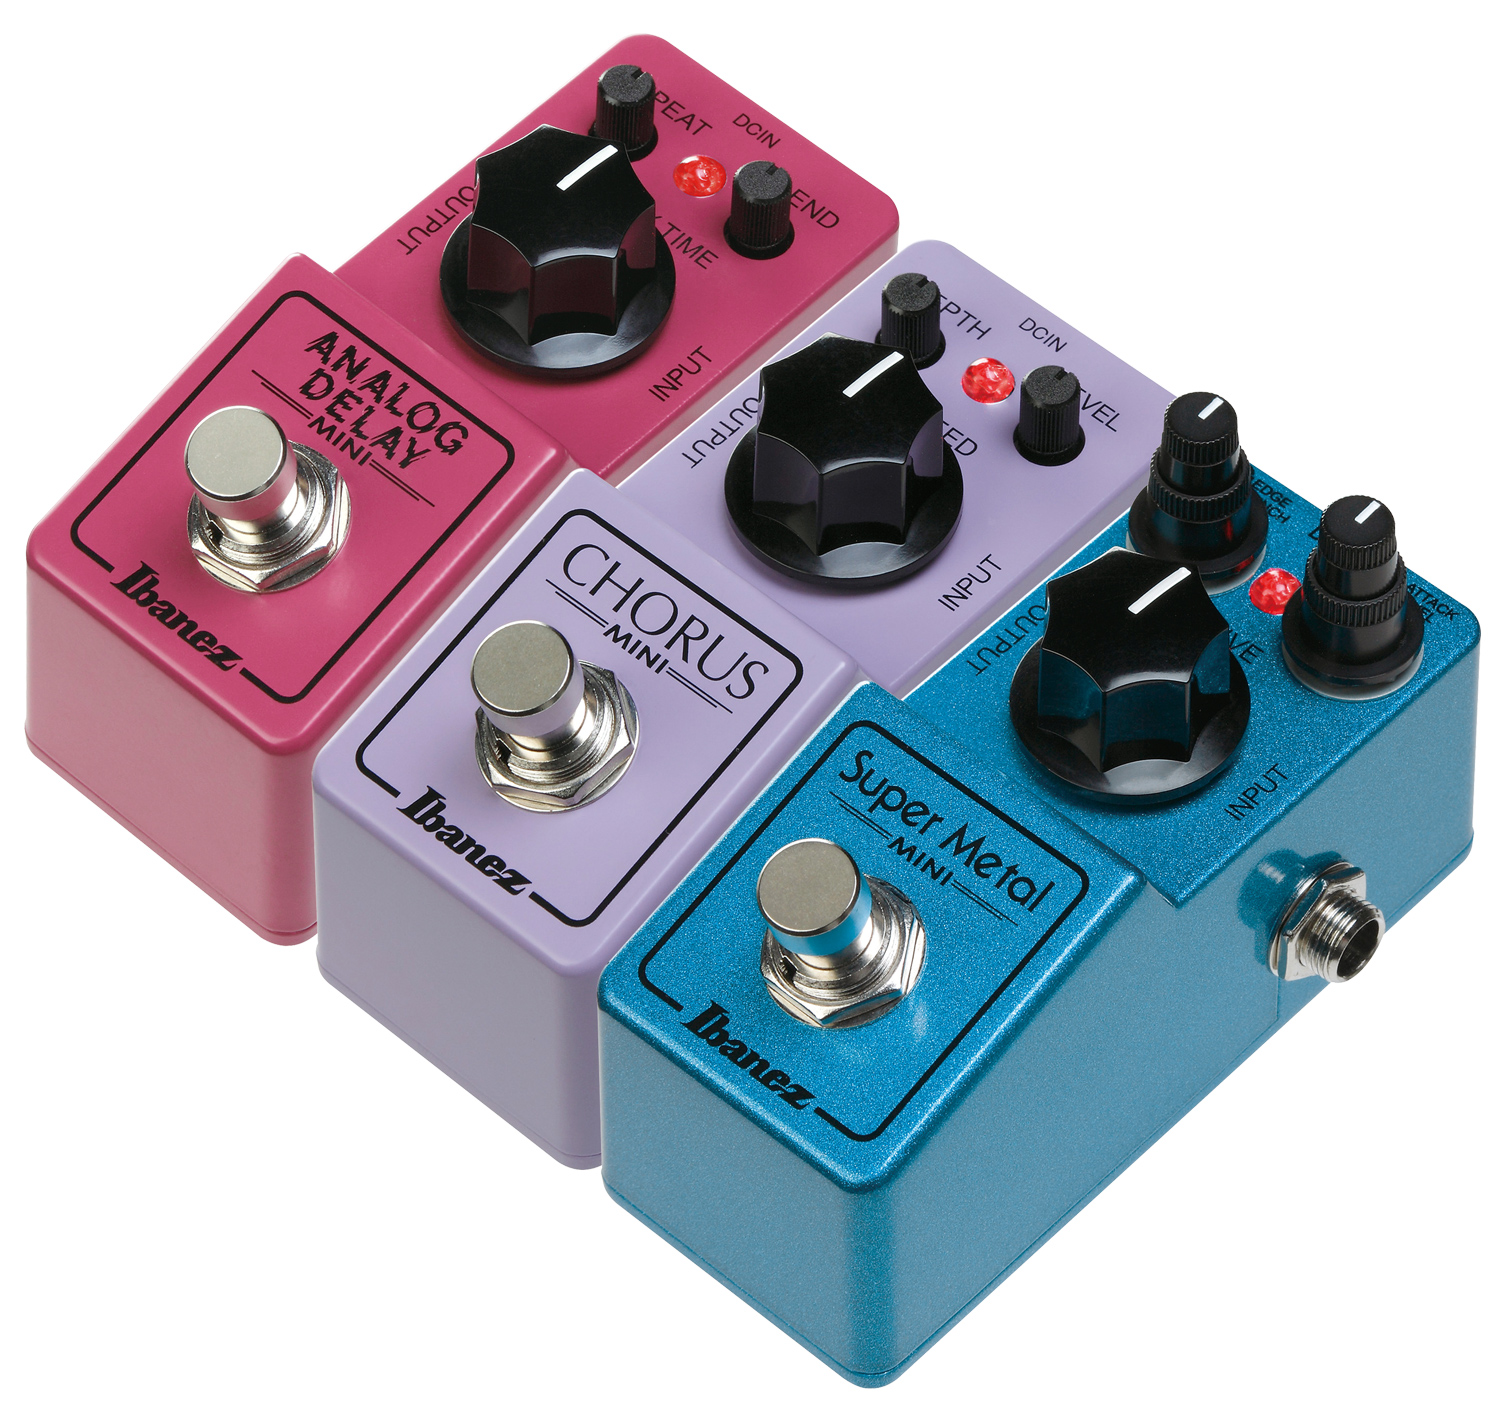 musicworks guitars effect pedals effect pedals ibanez mini effect pedals package. Black Bedroom Furniture Sets. Home Design Ideas